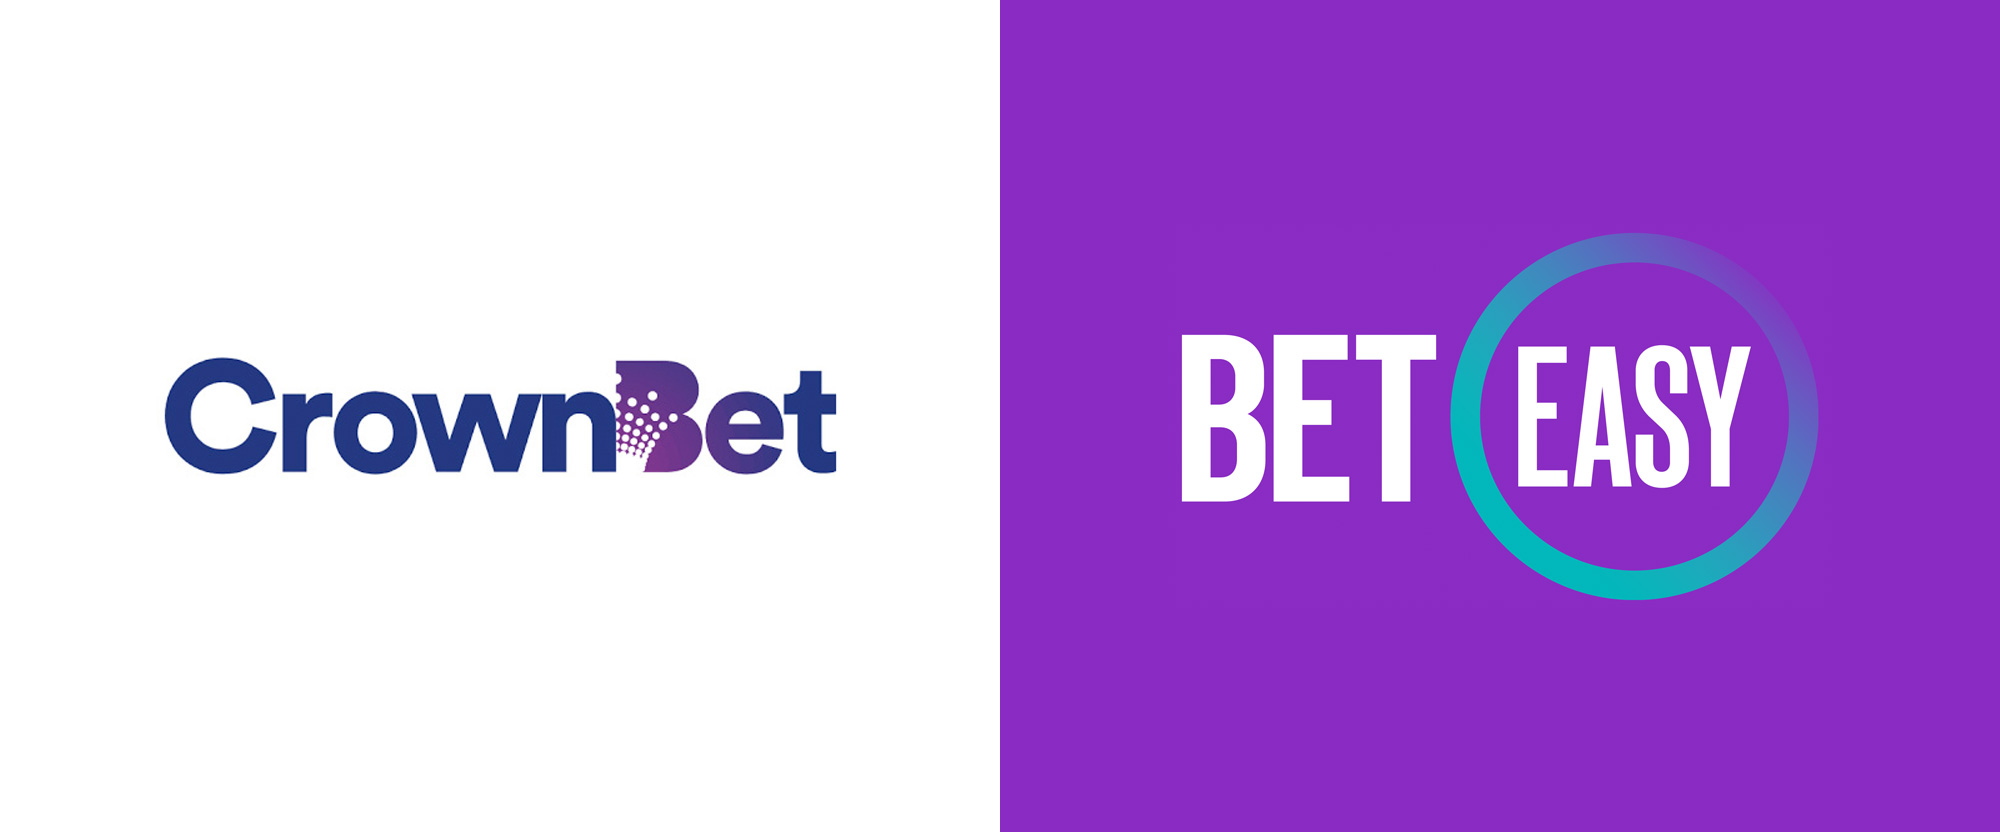 New Logo for Beteasy by Interbrand